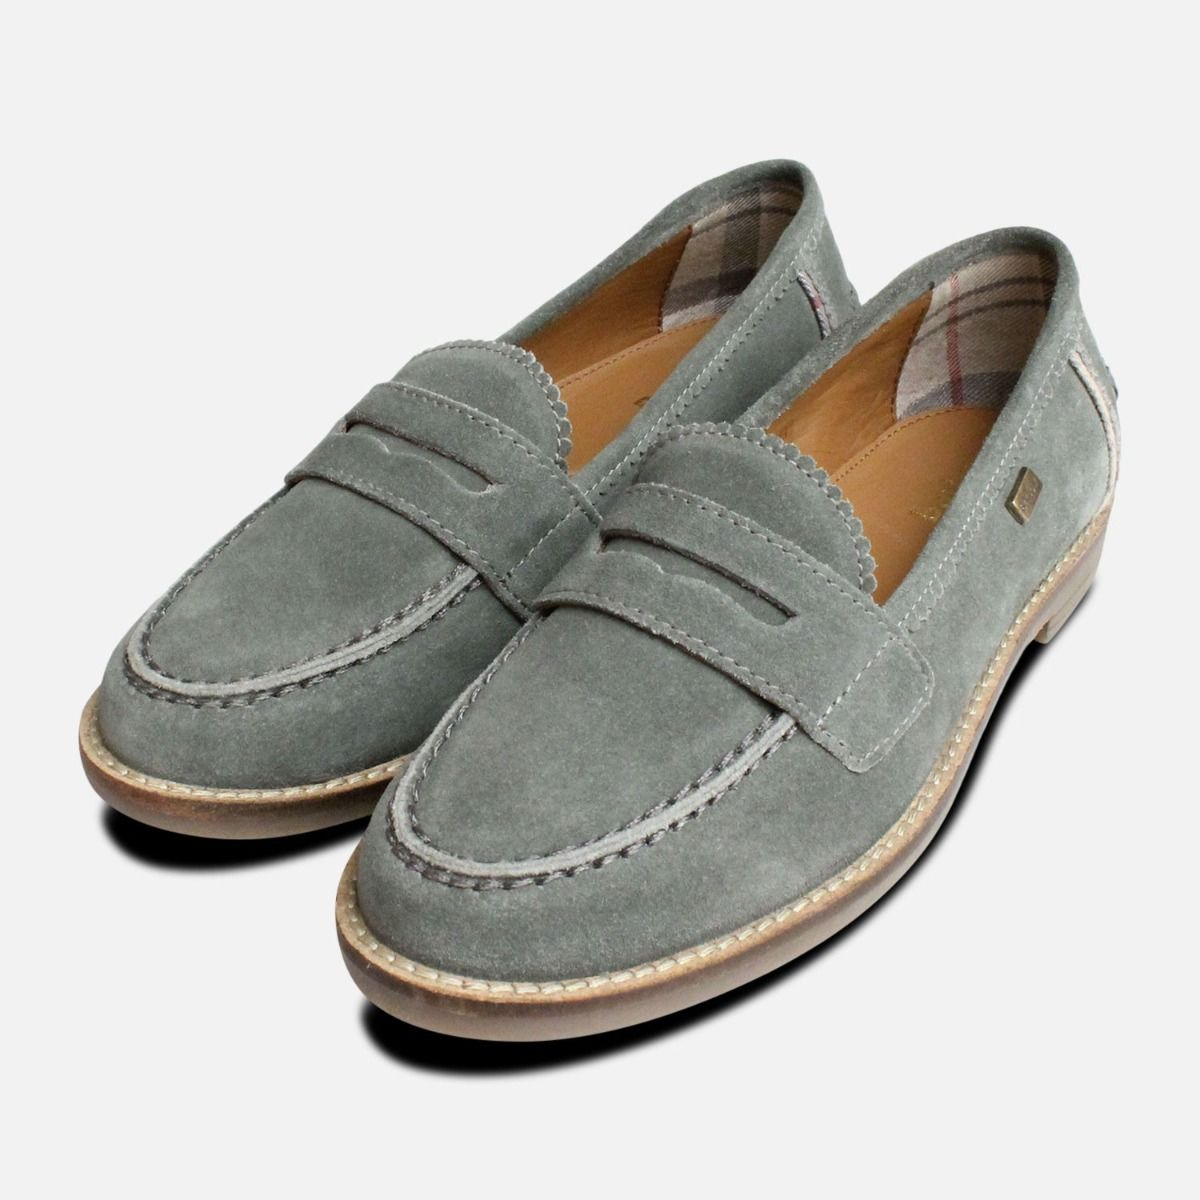 8be8f6efcdf Barbour Briony College Loafer in Teal Suede